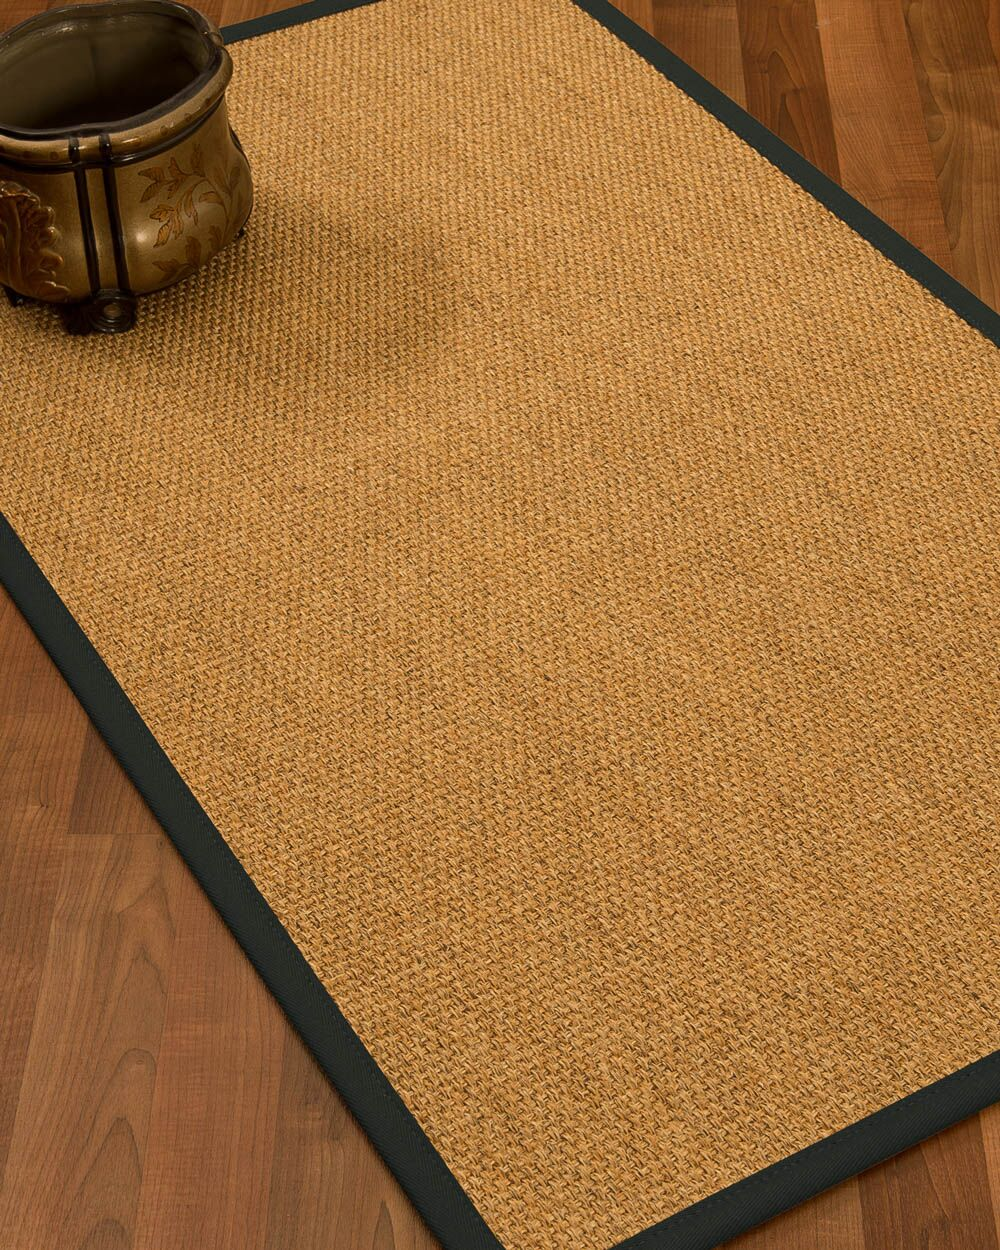 Healey Hand Woven Brown Area Rug Rug Size: Rectangle 9' X 12'